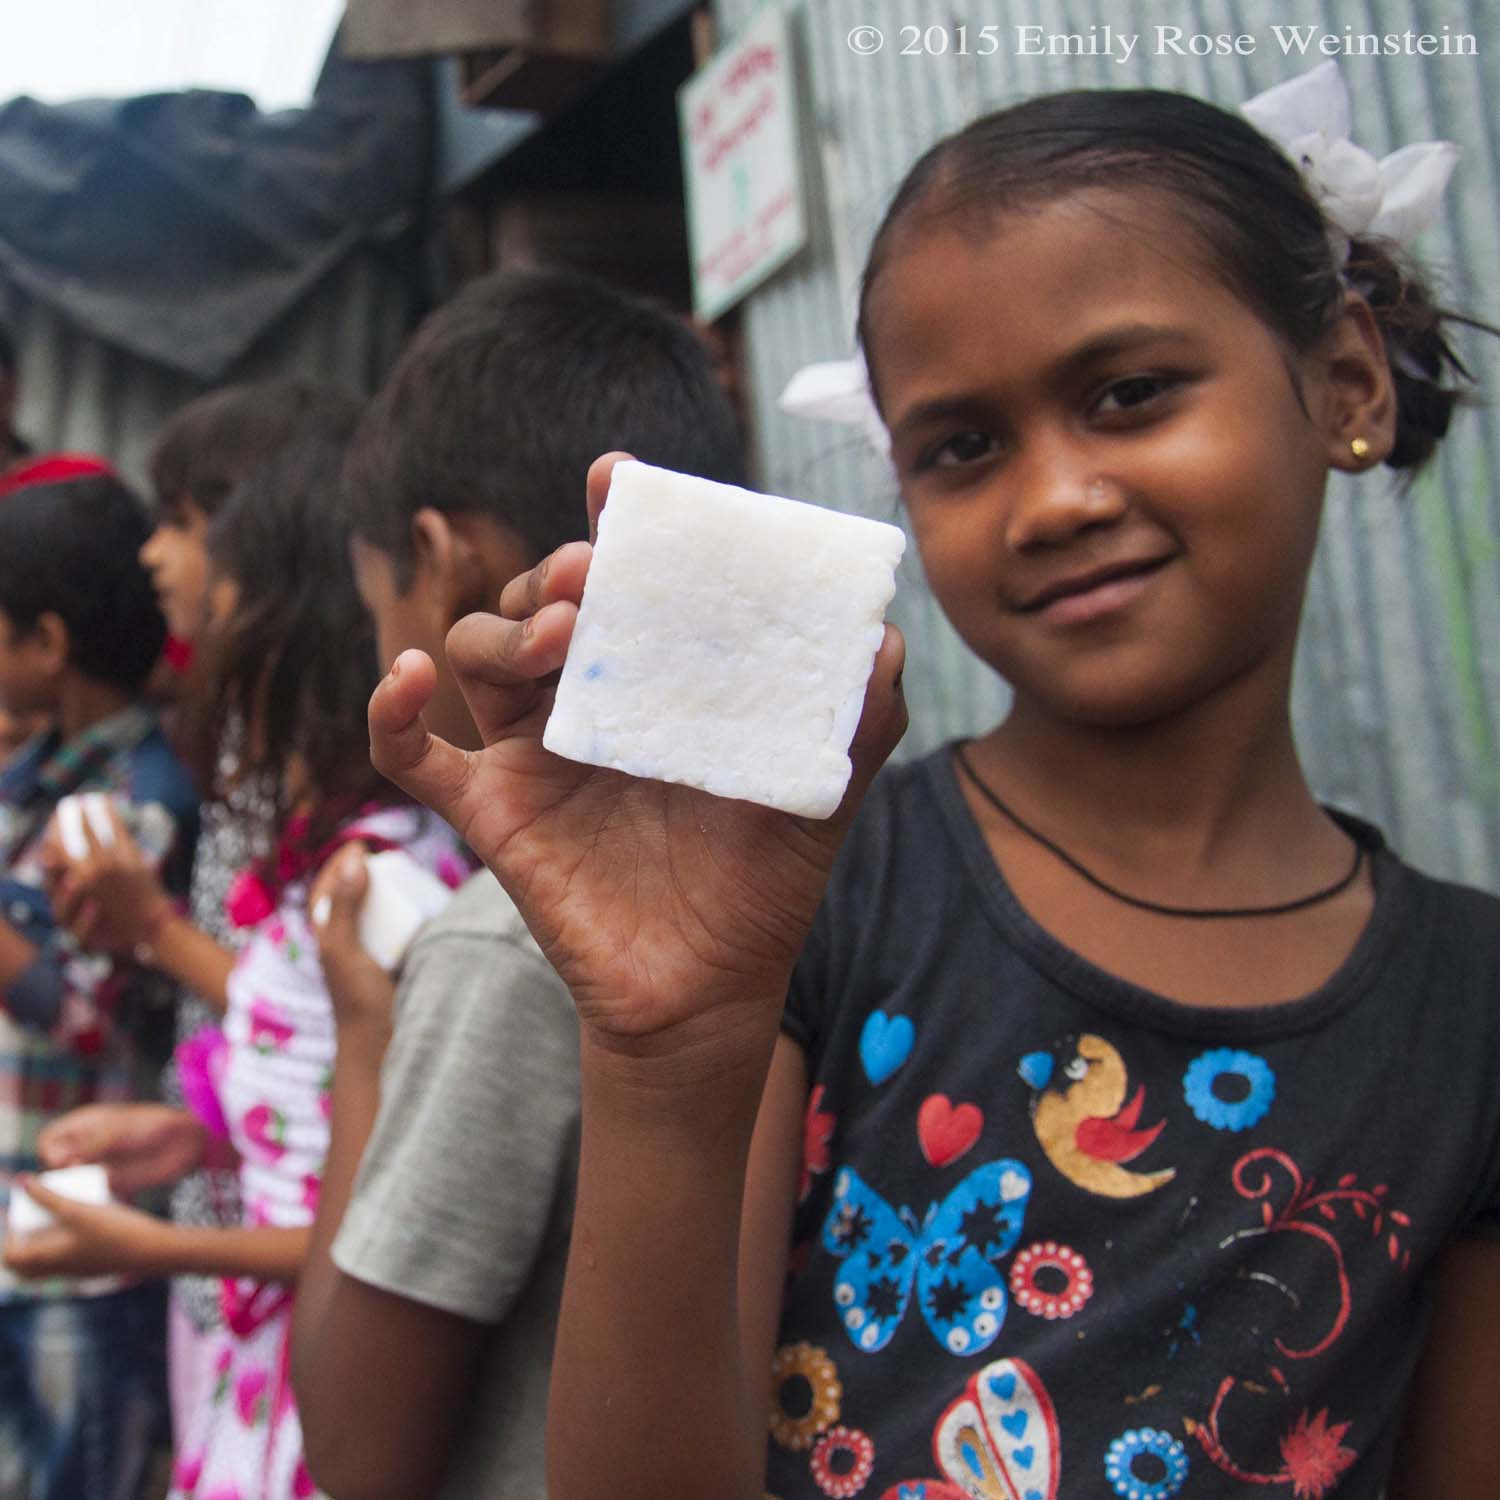 Recycled soap can help clean hands and save lives.